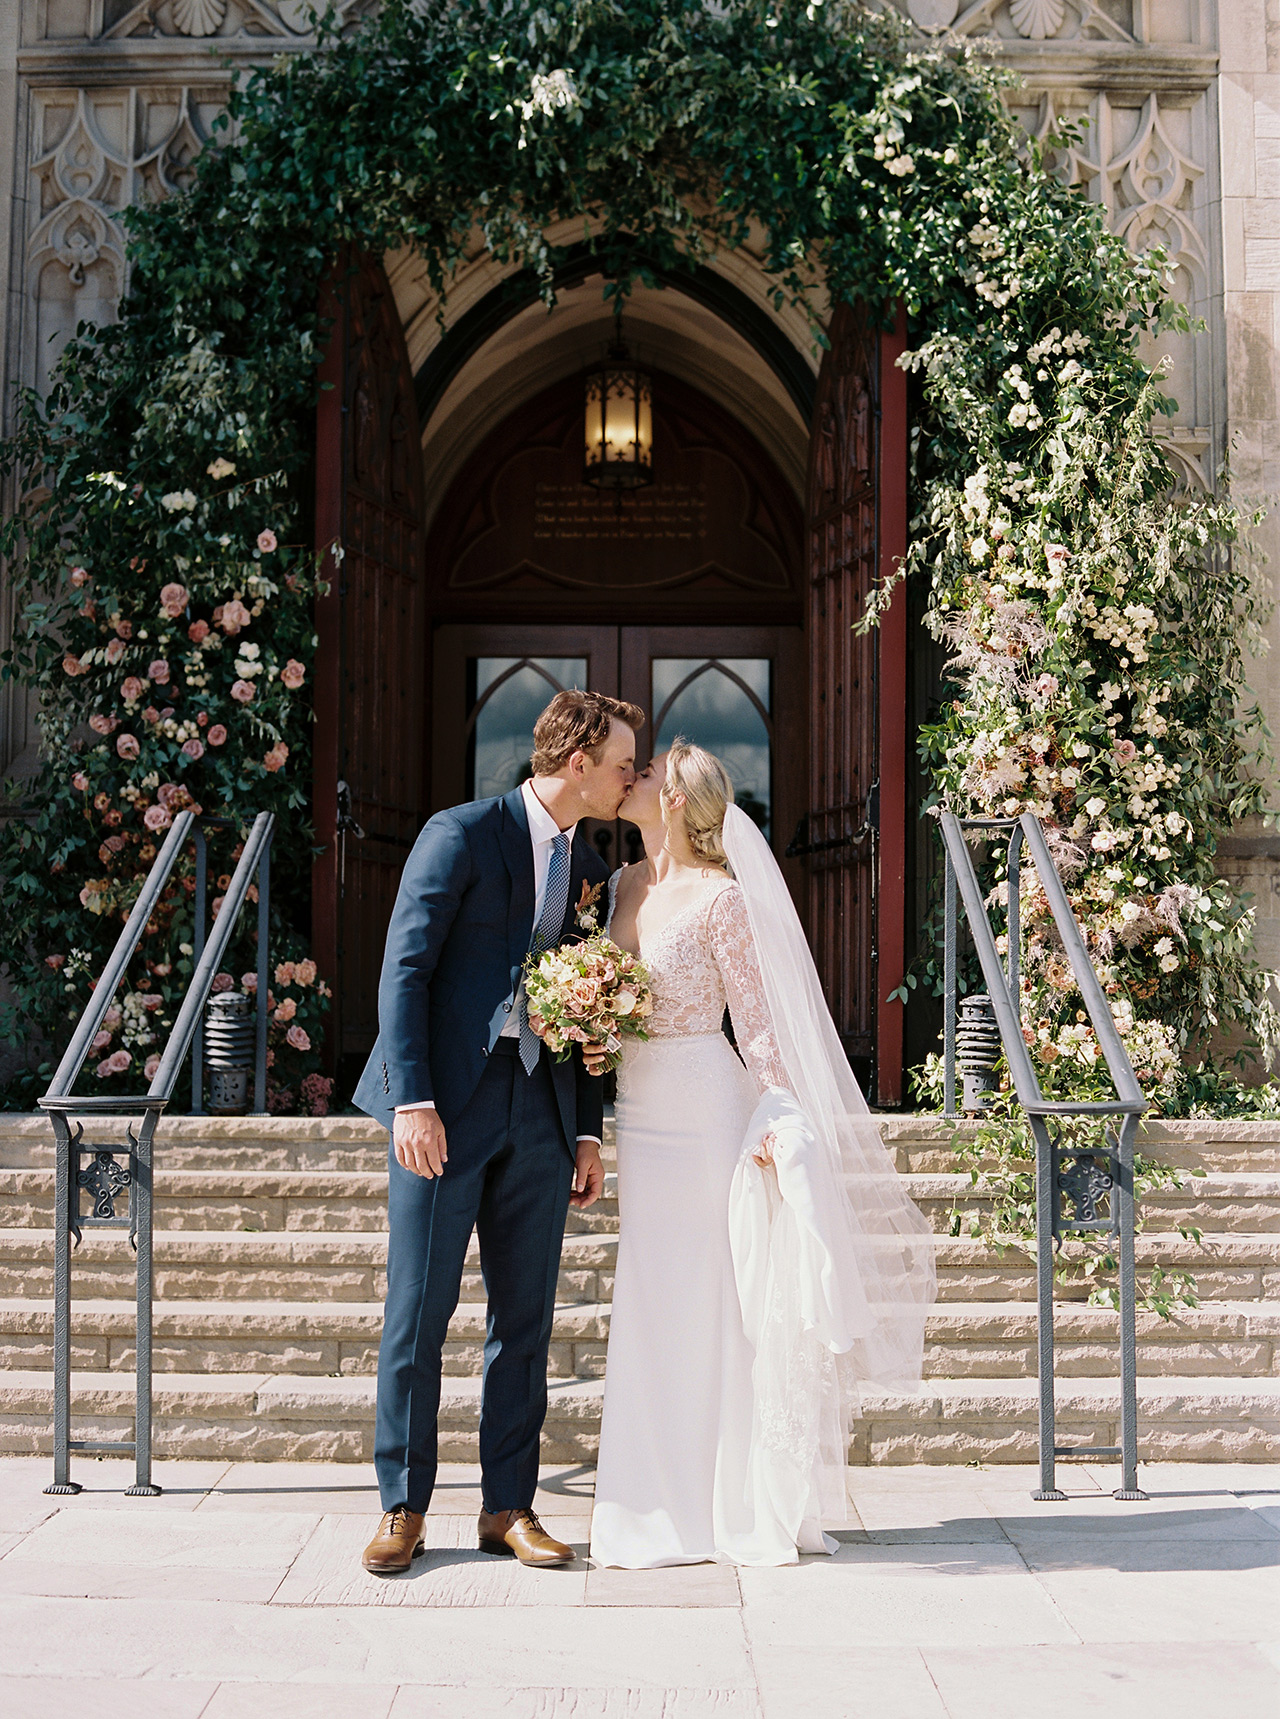 bride groom kiss in front of floral arch church entrance